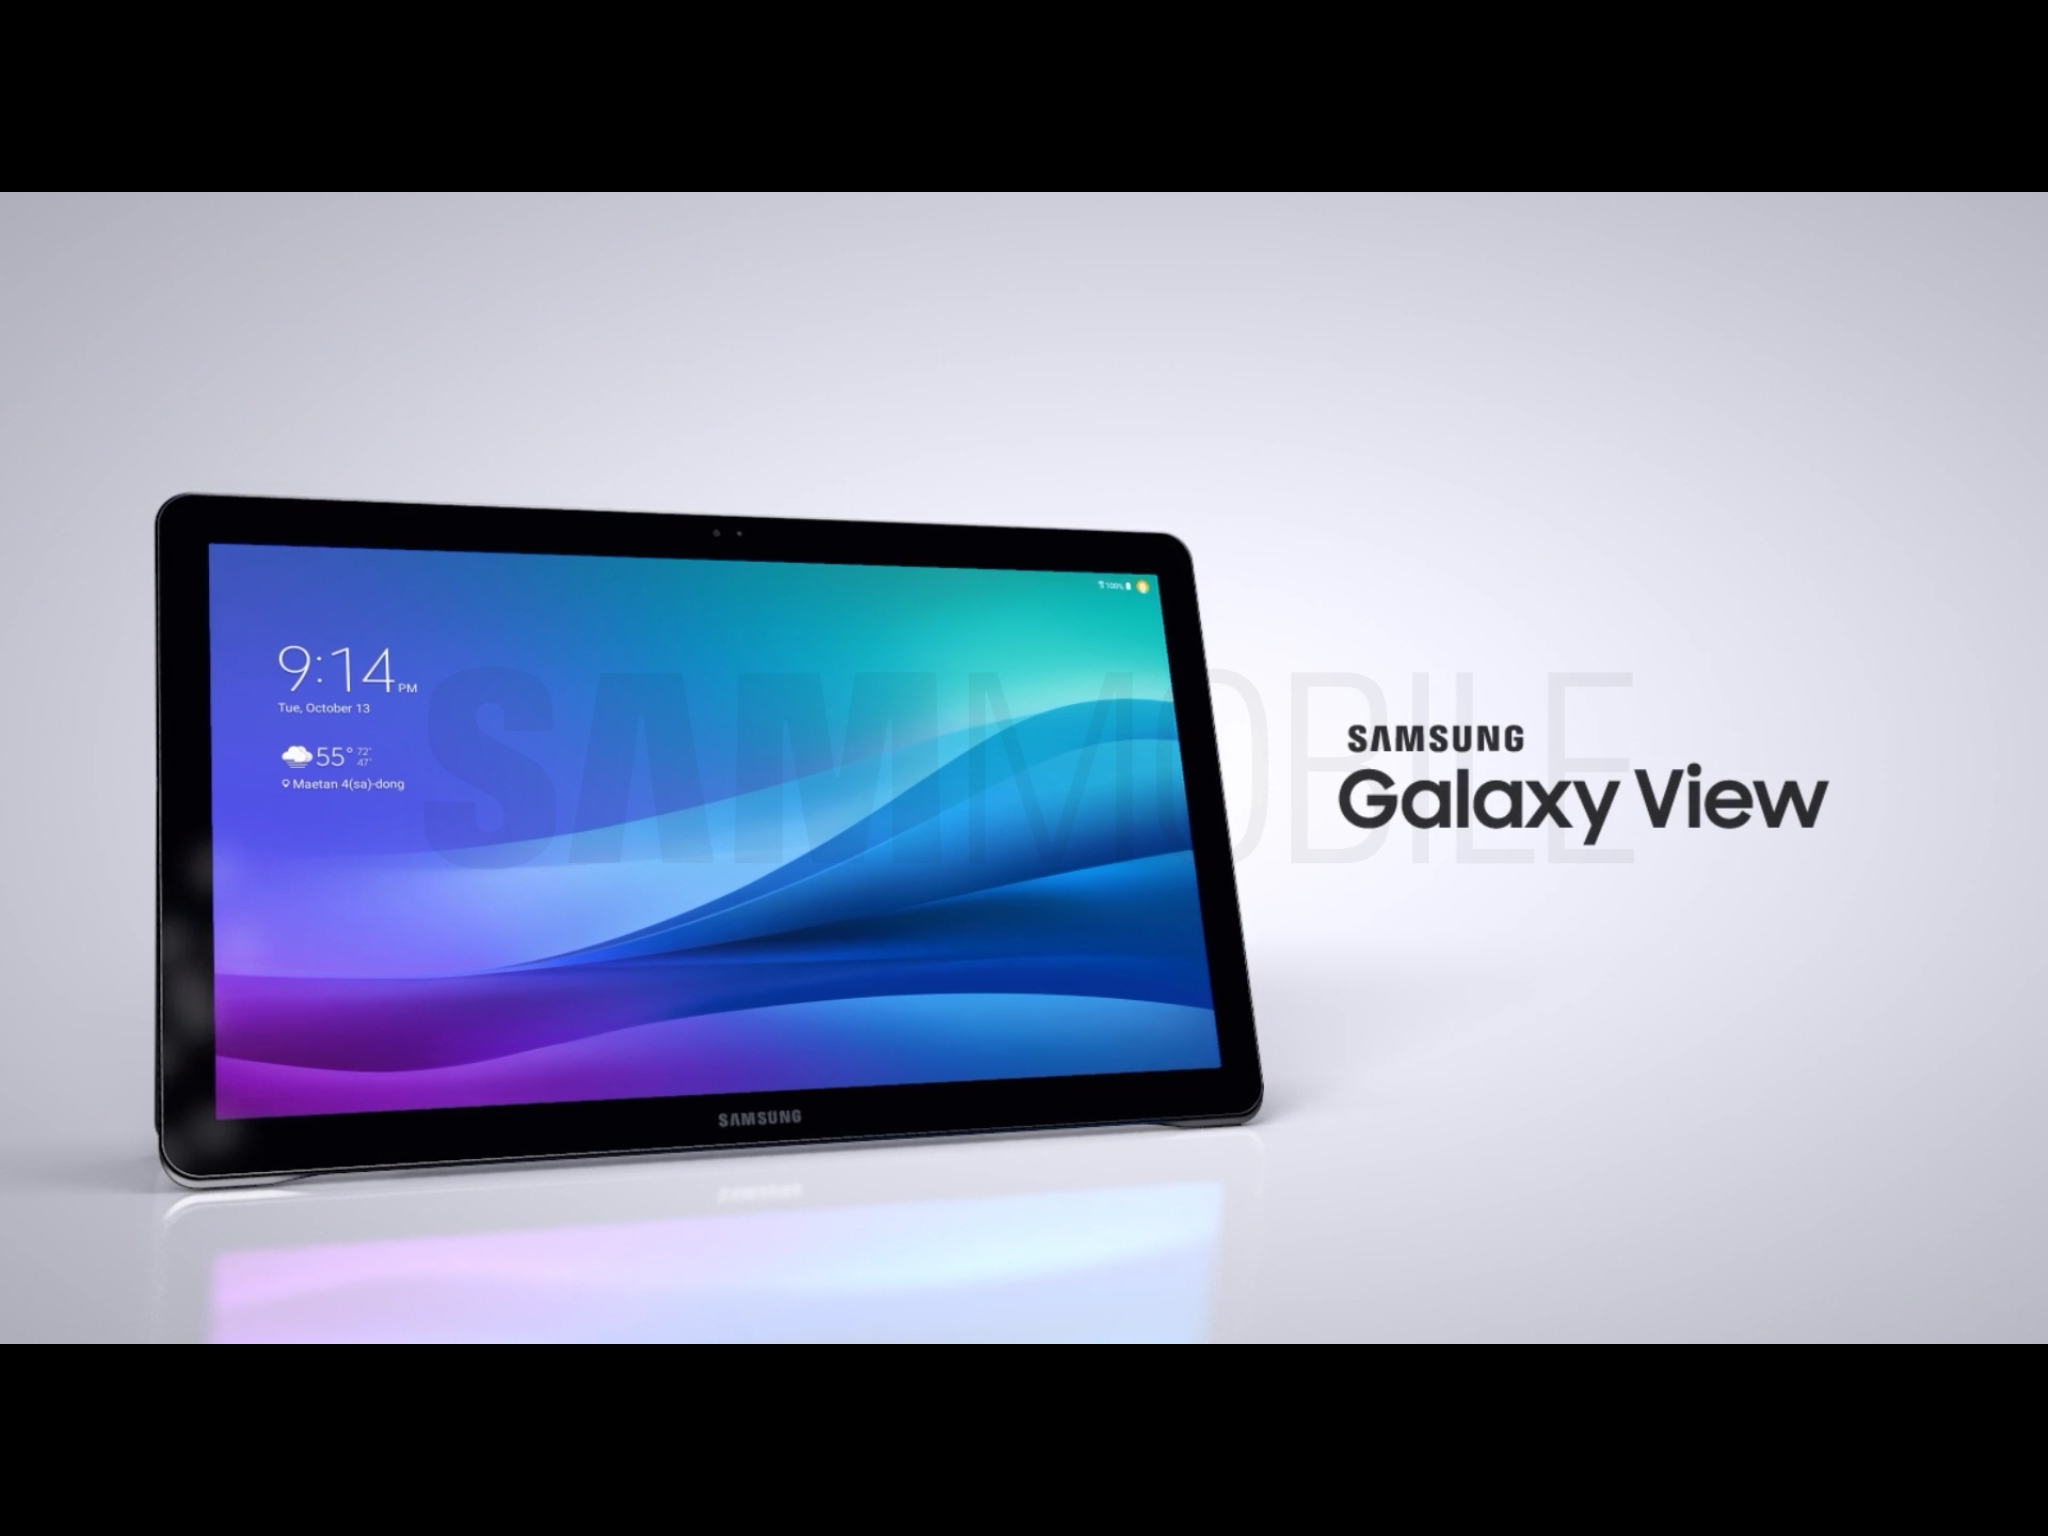 Samsung Galaxy View SamMobile_027